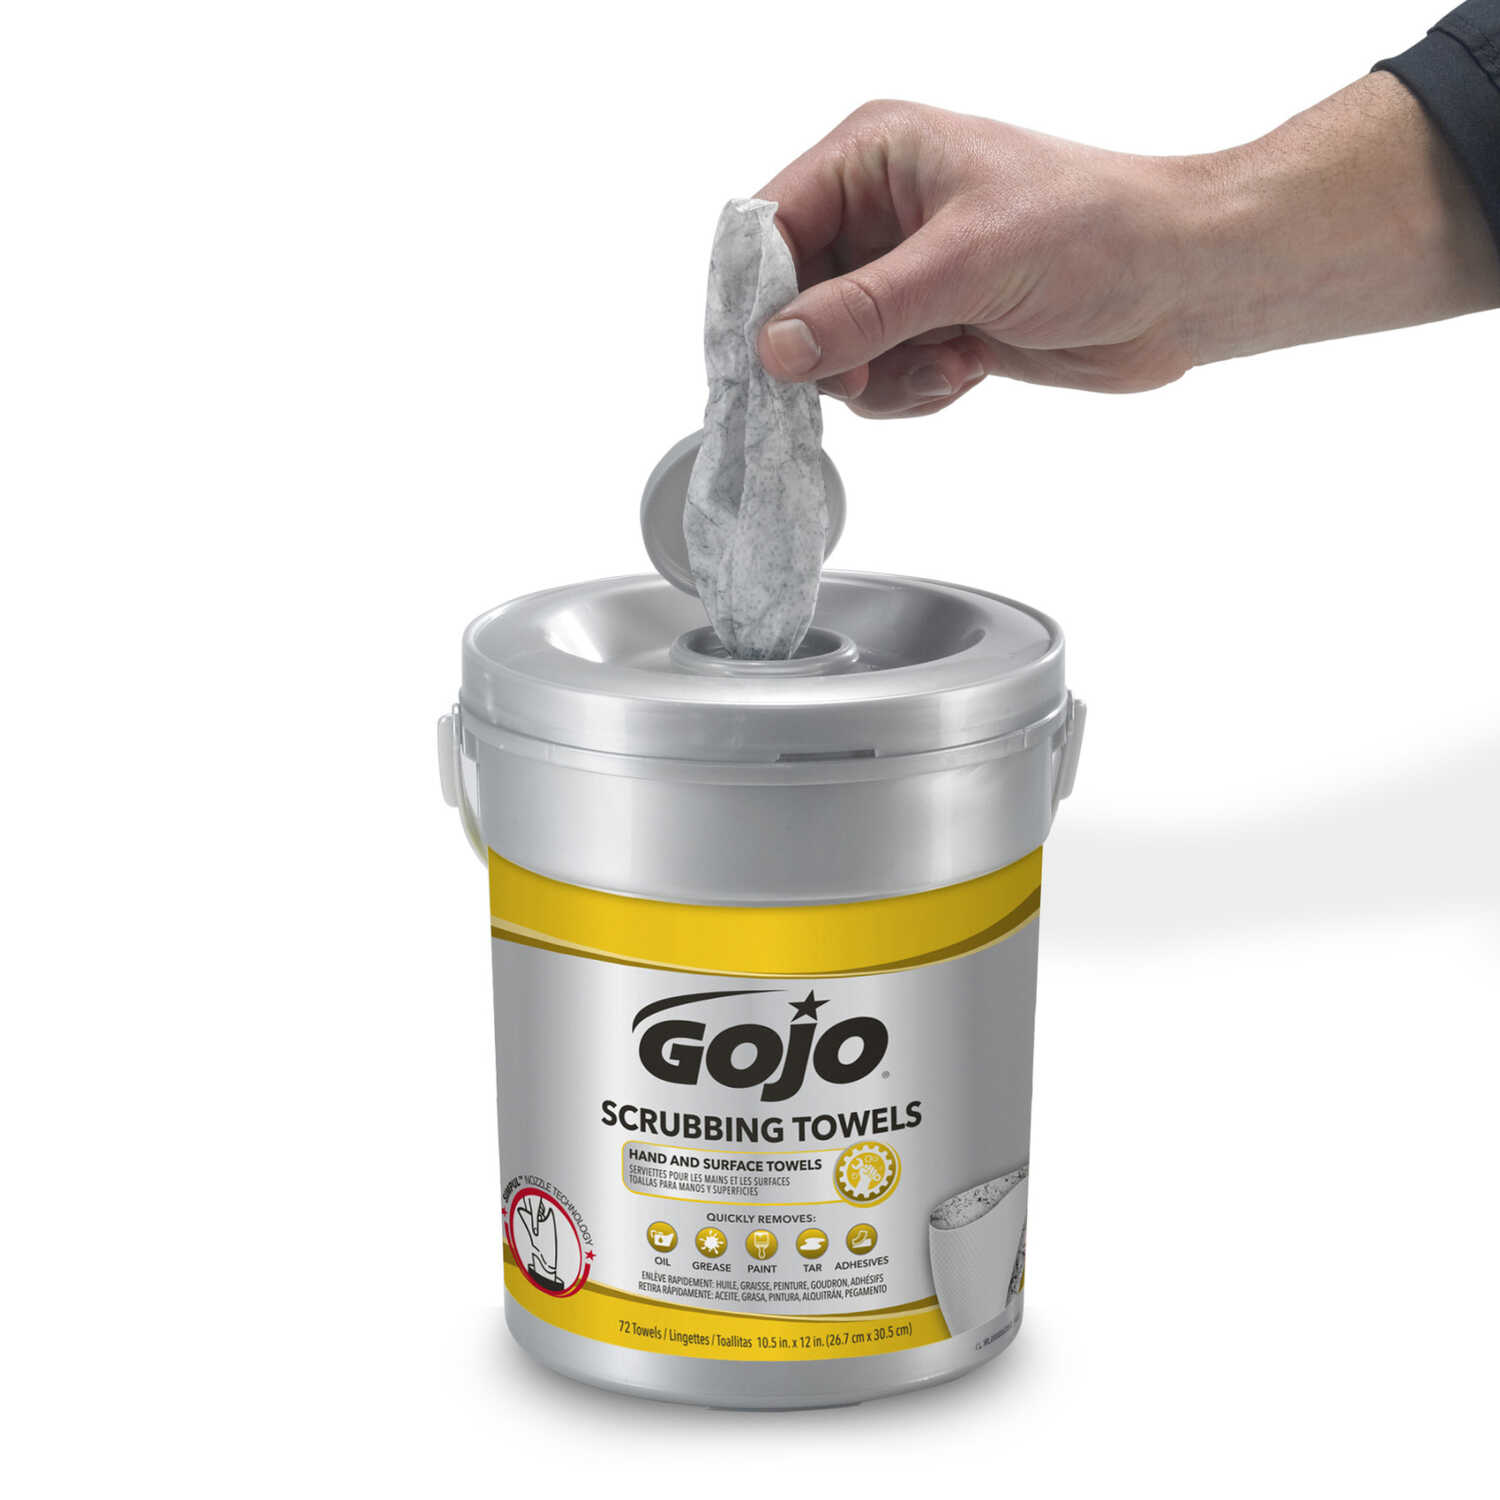 Gojo  Scrubbing Towels  Fresh Citrus Scent Hand and Surface Towels